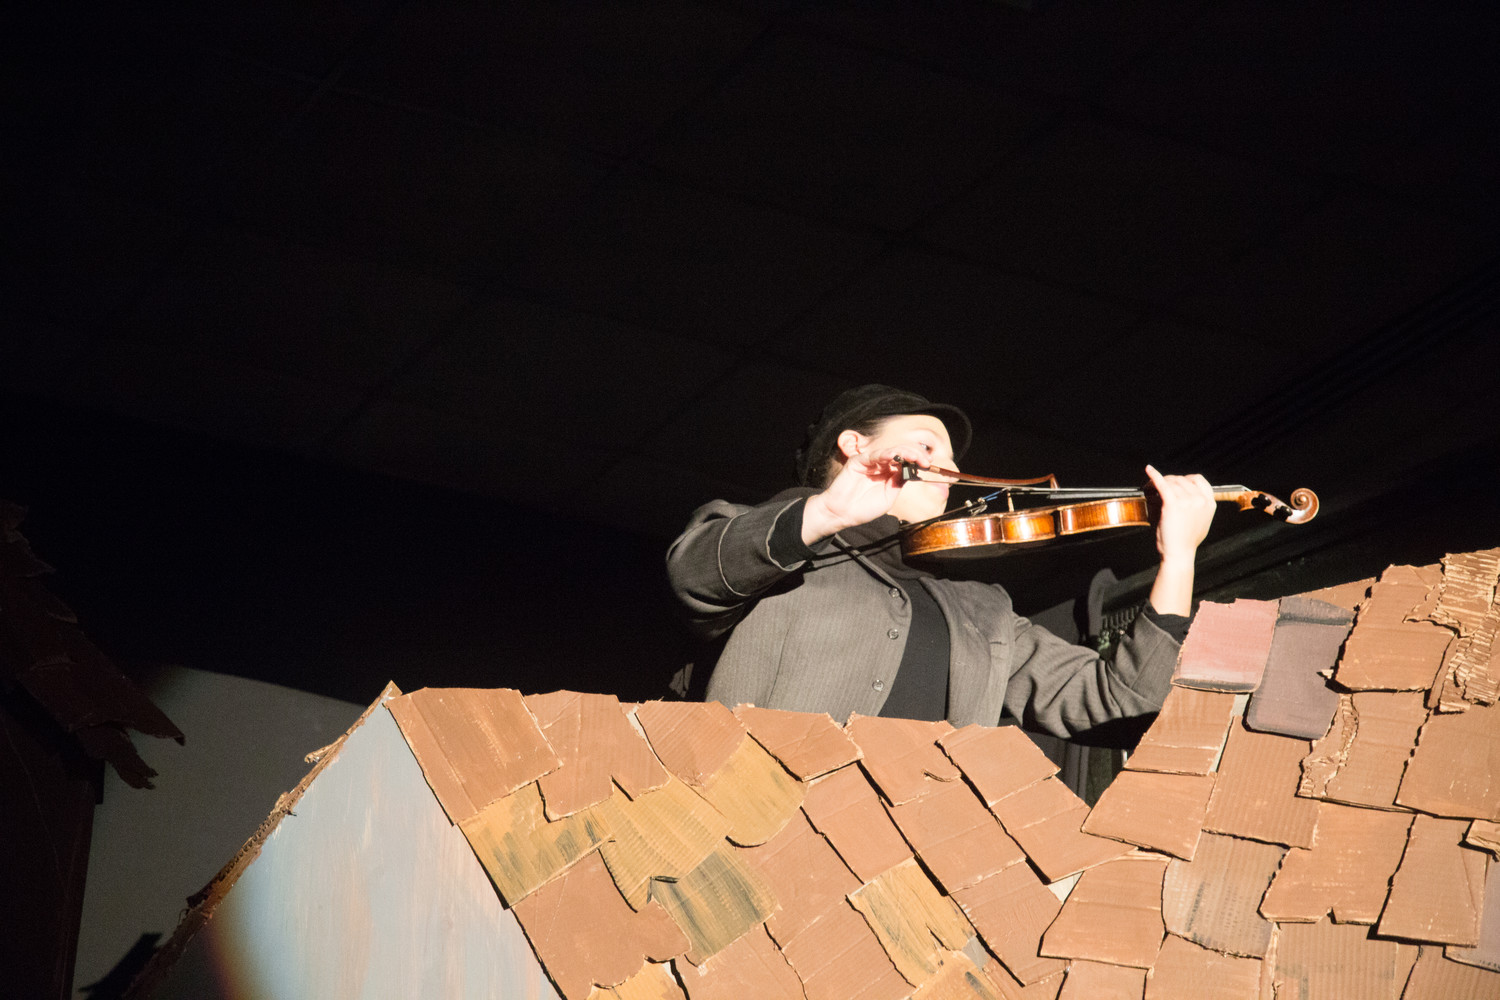 In honor of its last show in East Meadow, Temple Emanu-El is performing Fiddler on the Roof— the same show that re-launched its musical theater program in 2003. There will be performances on Jan. 20 at 8 p.m. and 21 at 2 p.m. Ashley Sanders, 17, plays the fiddler after whom the play is named.